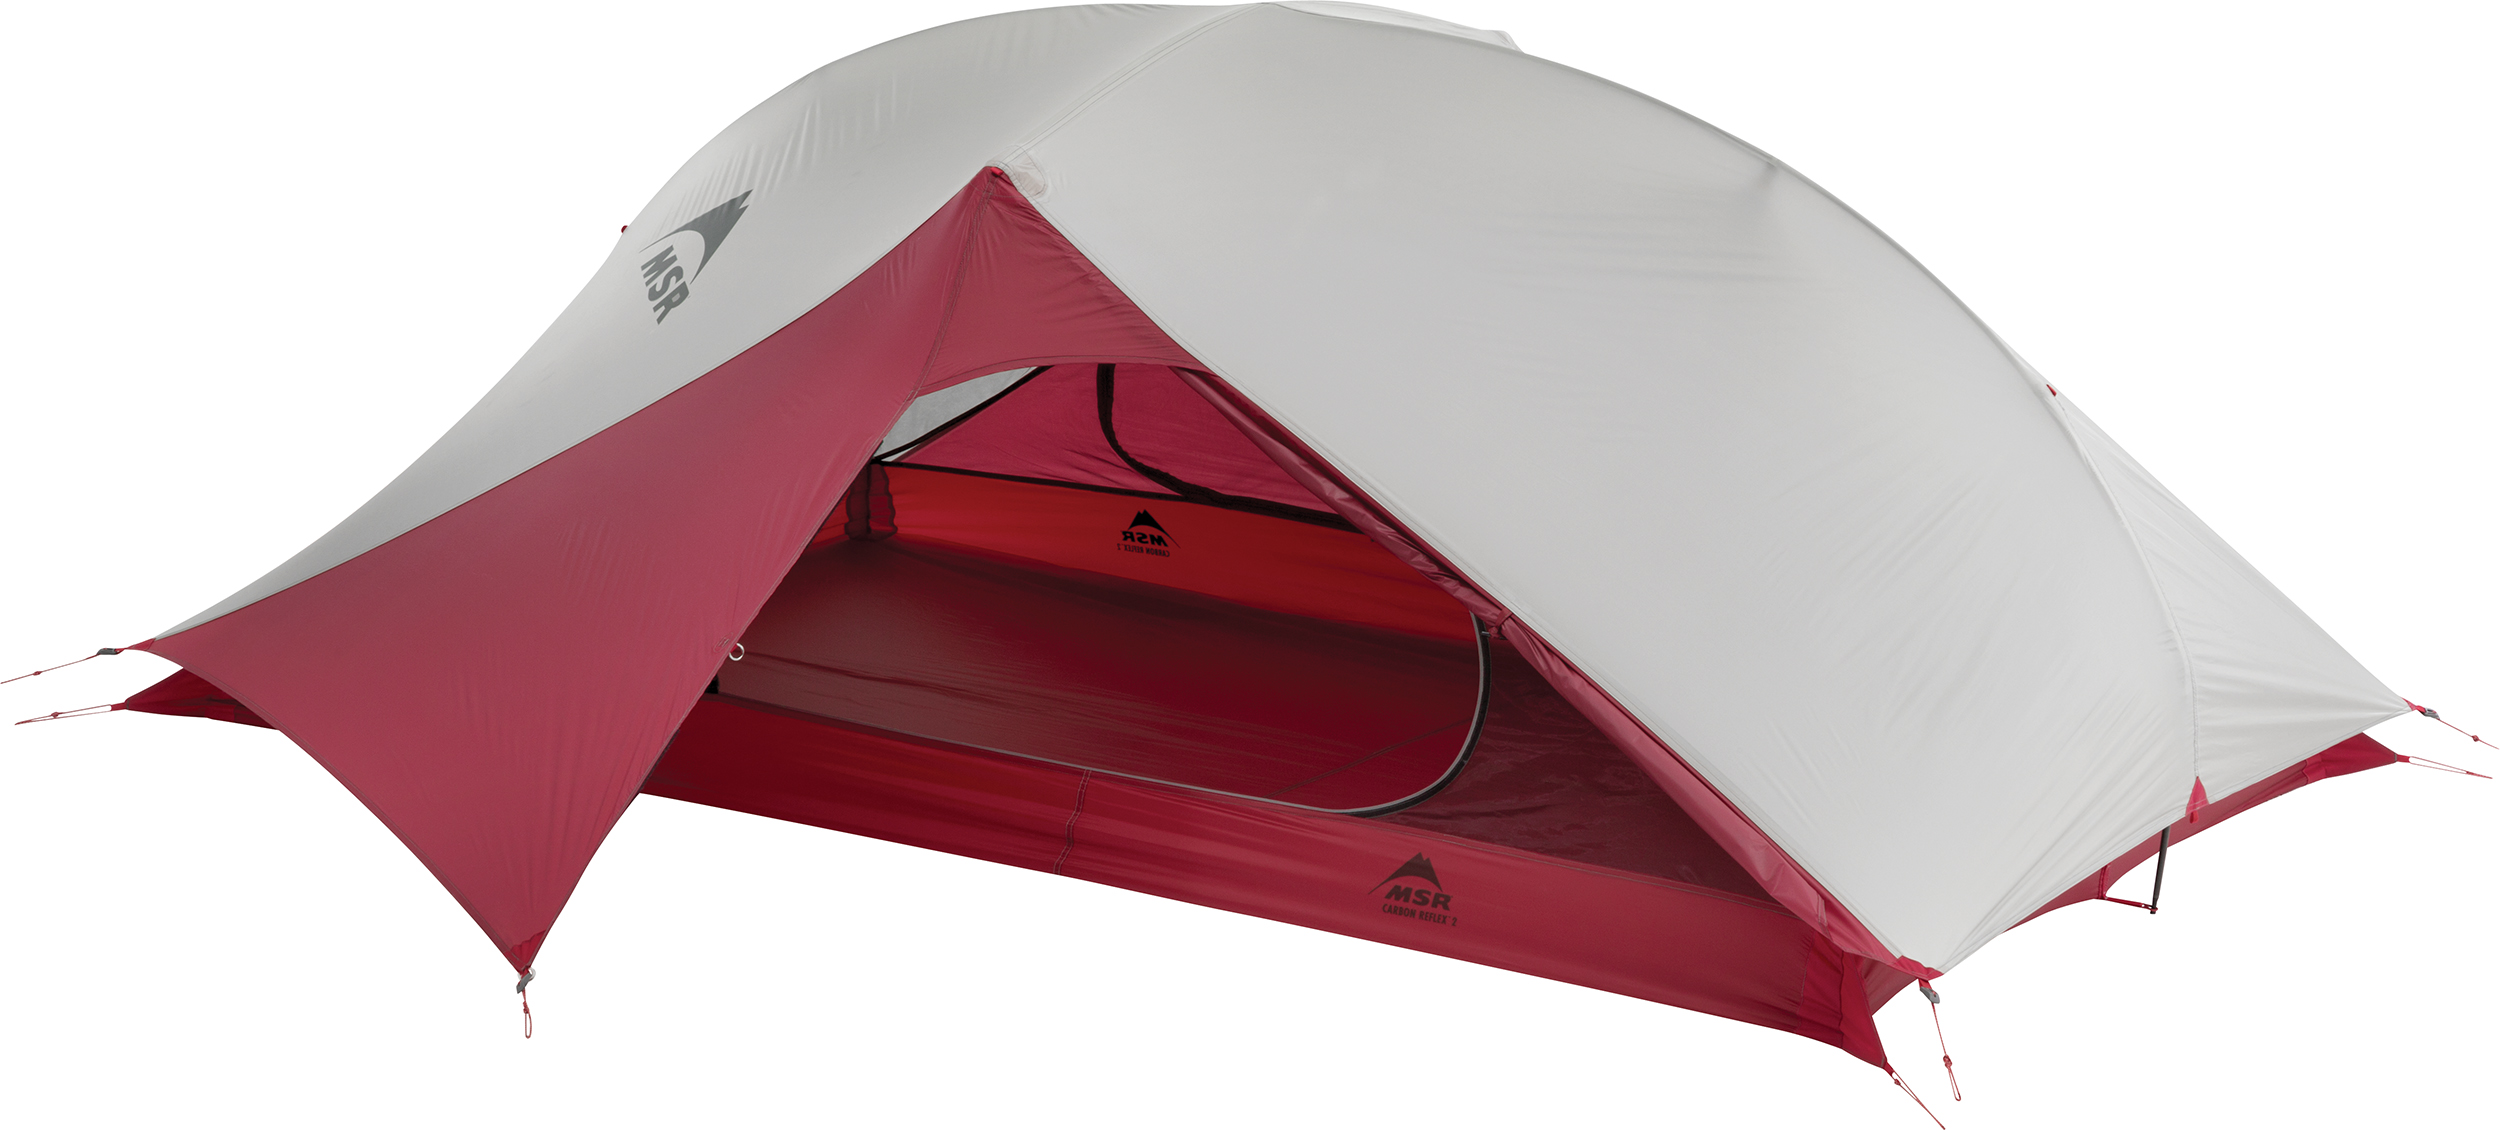 Carbon Reflex™ 2 Ultralight Tent  sc 1 st  MSR & MSR® Carbon Reflex™ 2 Two-Person Ultralight Tent | MSR Gear